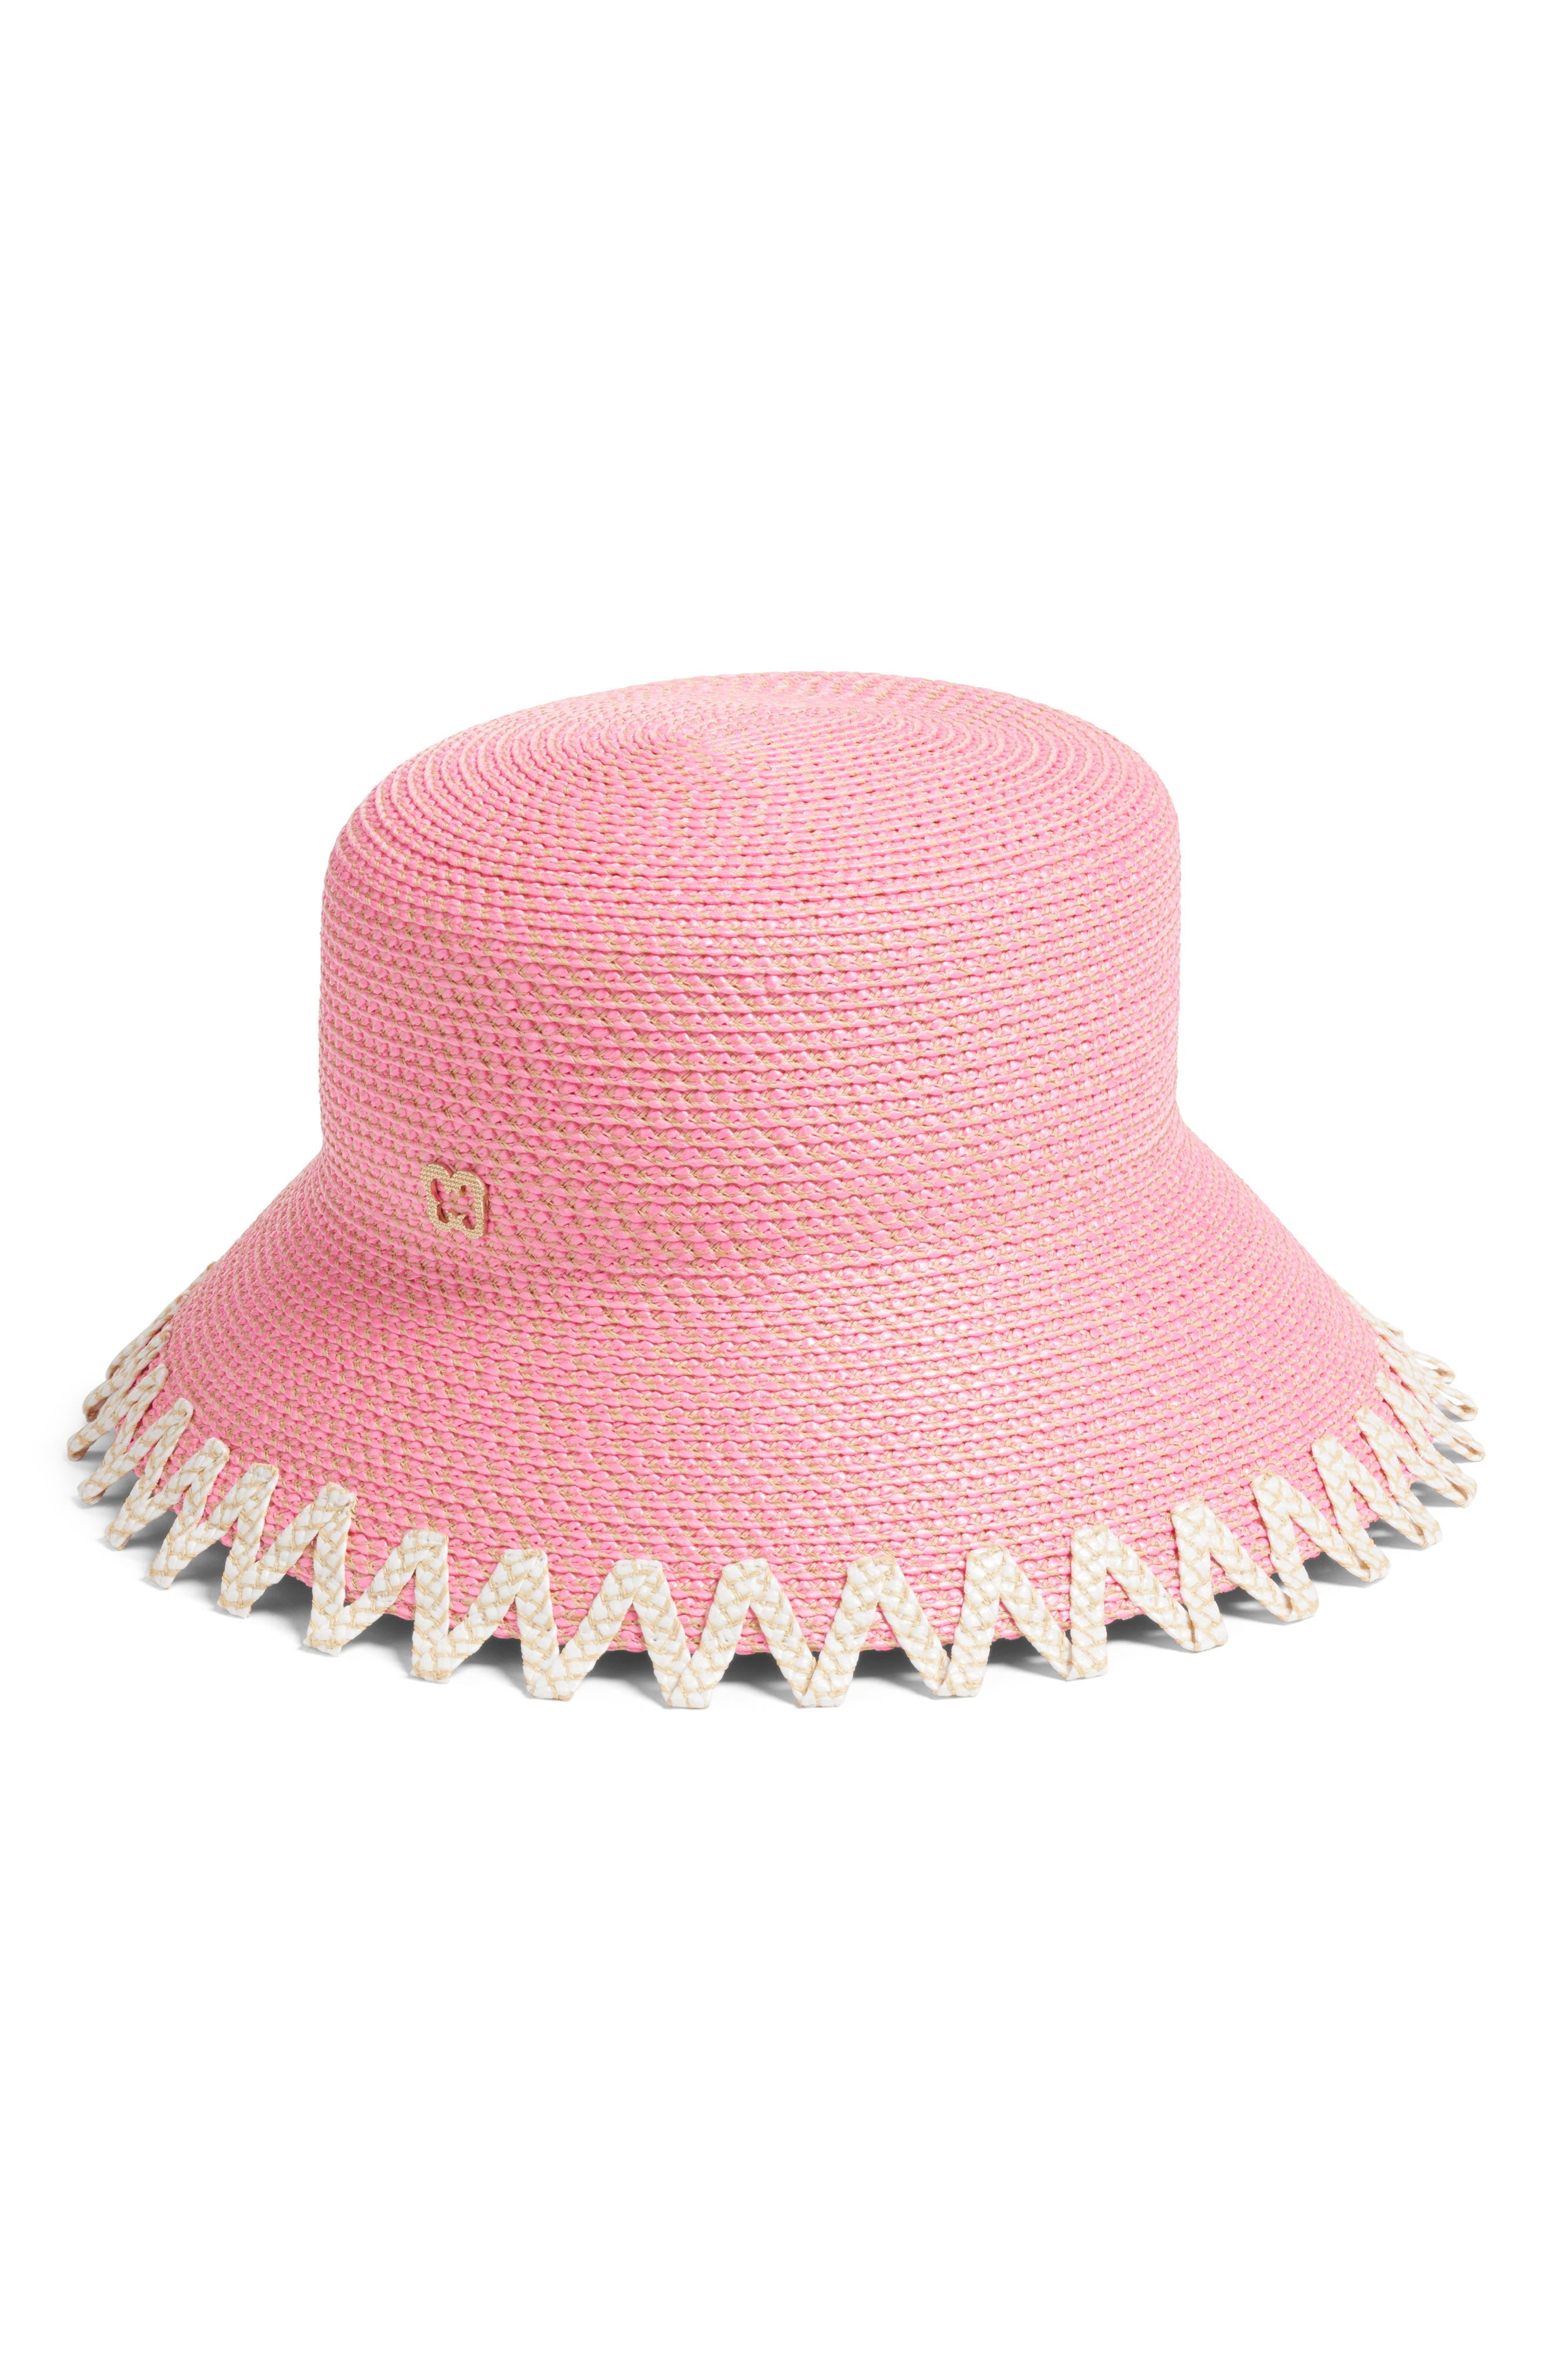 Eloise Squishee<sup>®</sup> Bucket Hat,                             Alternate thumbnail 2, color,                             Pink Mix